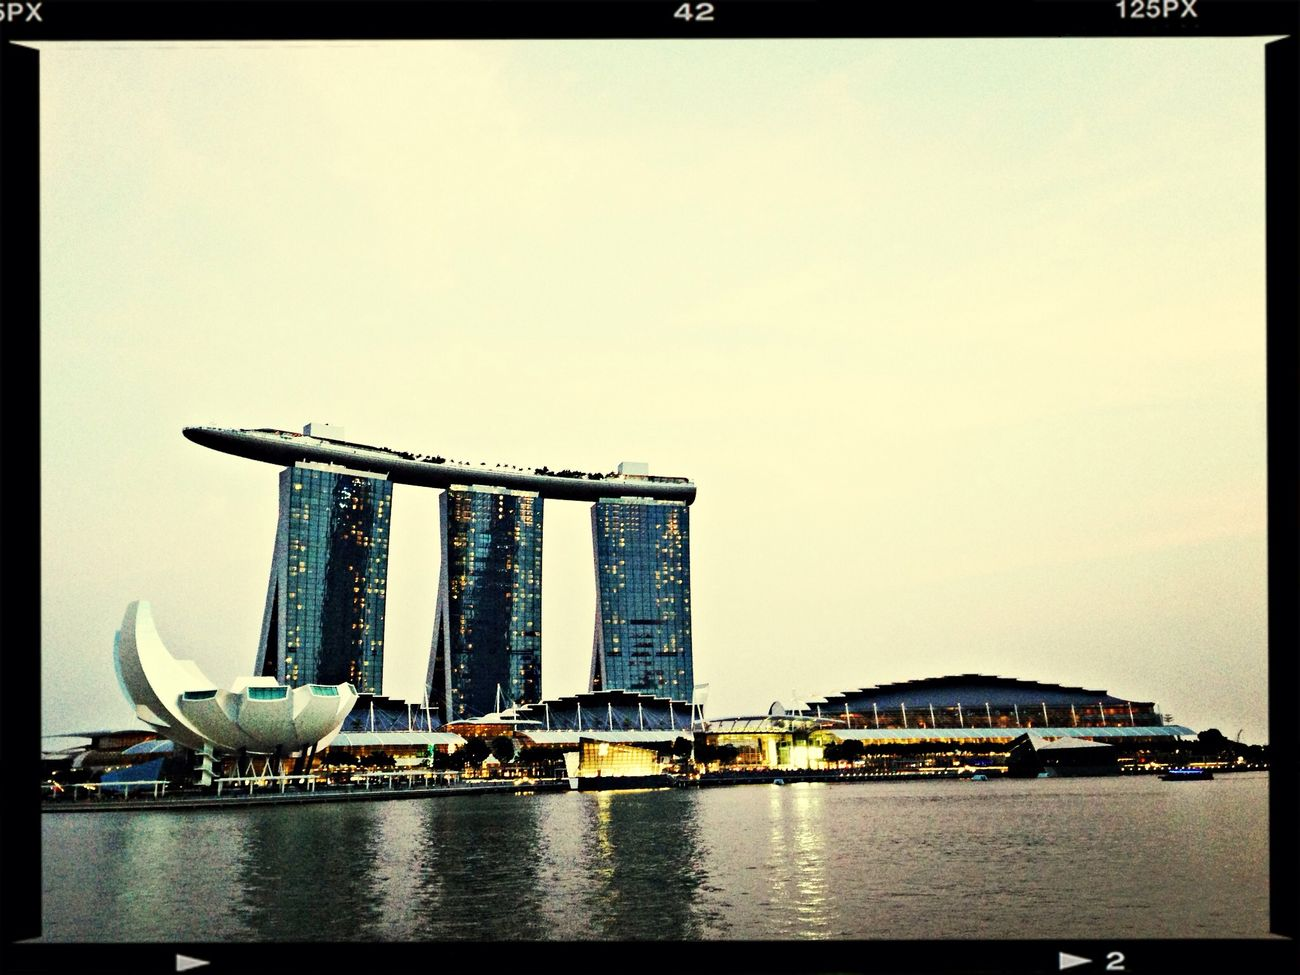 First shot of MBS with Marina Bay